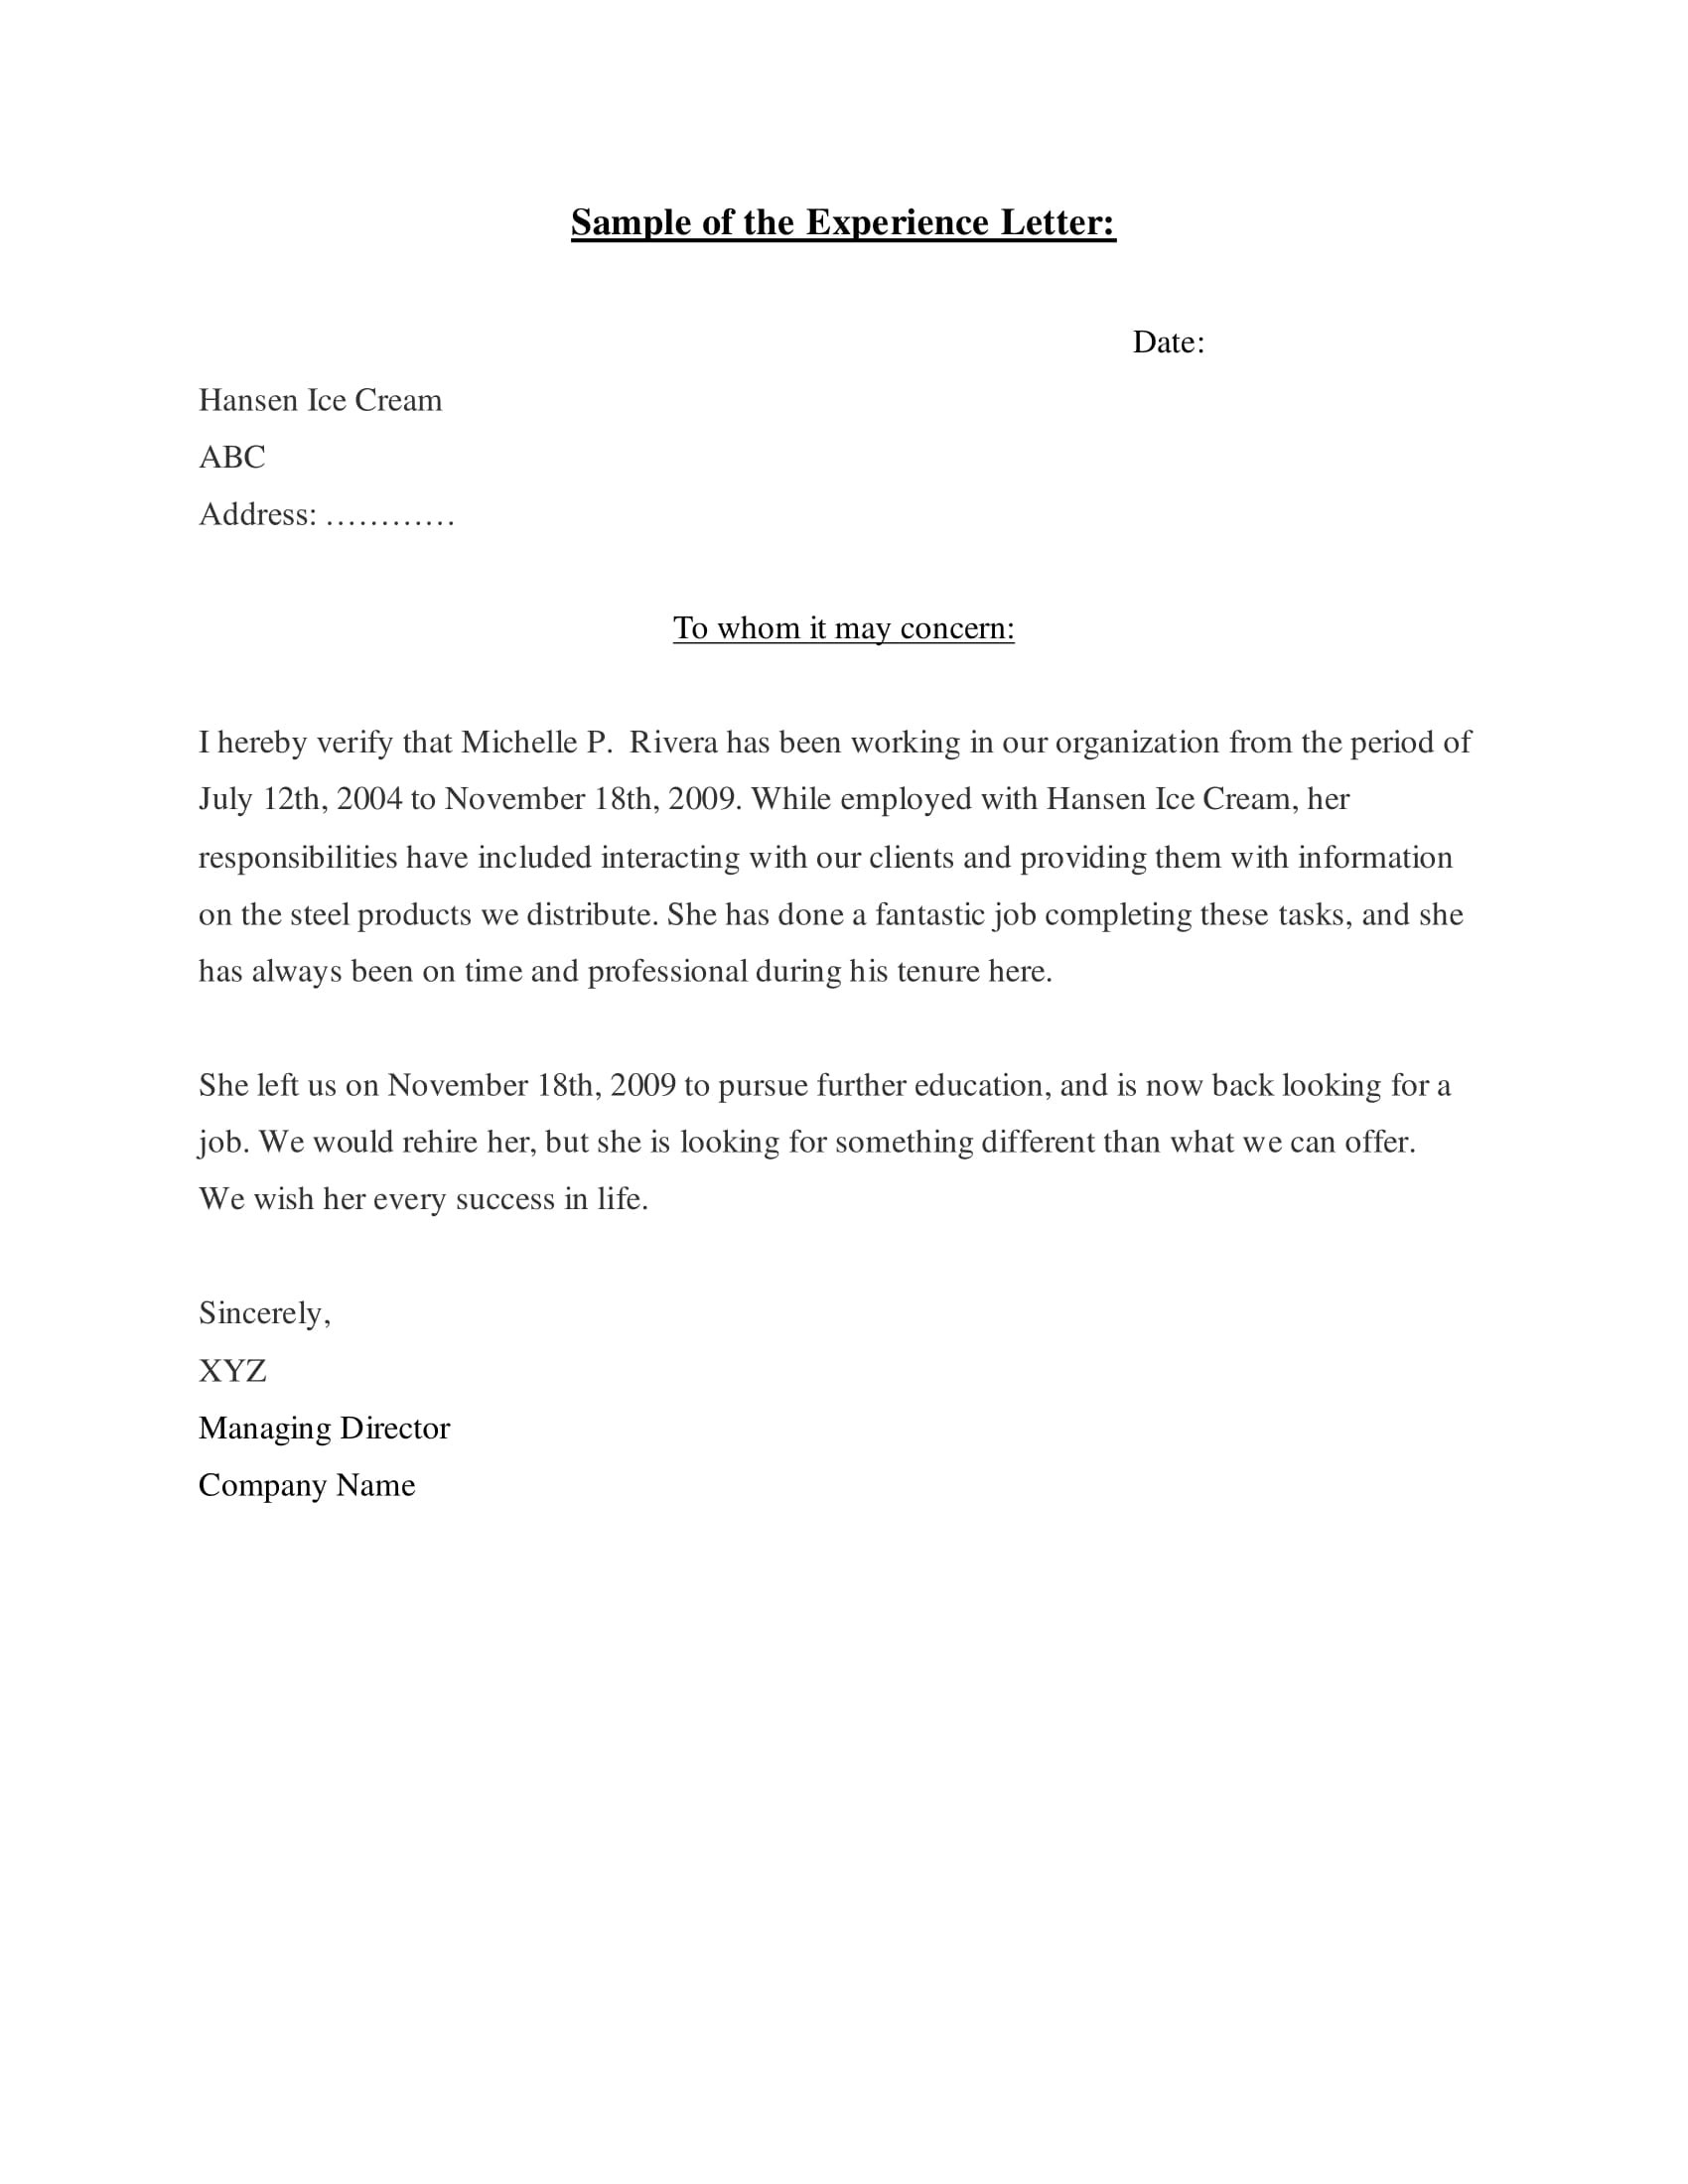 Experience Letter Templates In Pdf  Free  Premium Templates With Regard To Template Of Experience Certificate